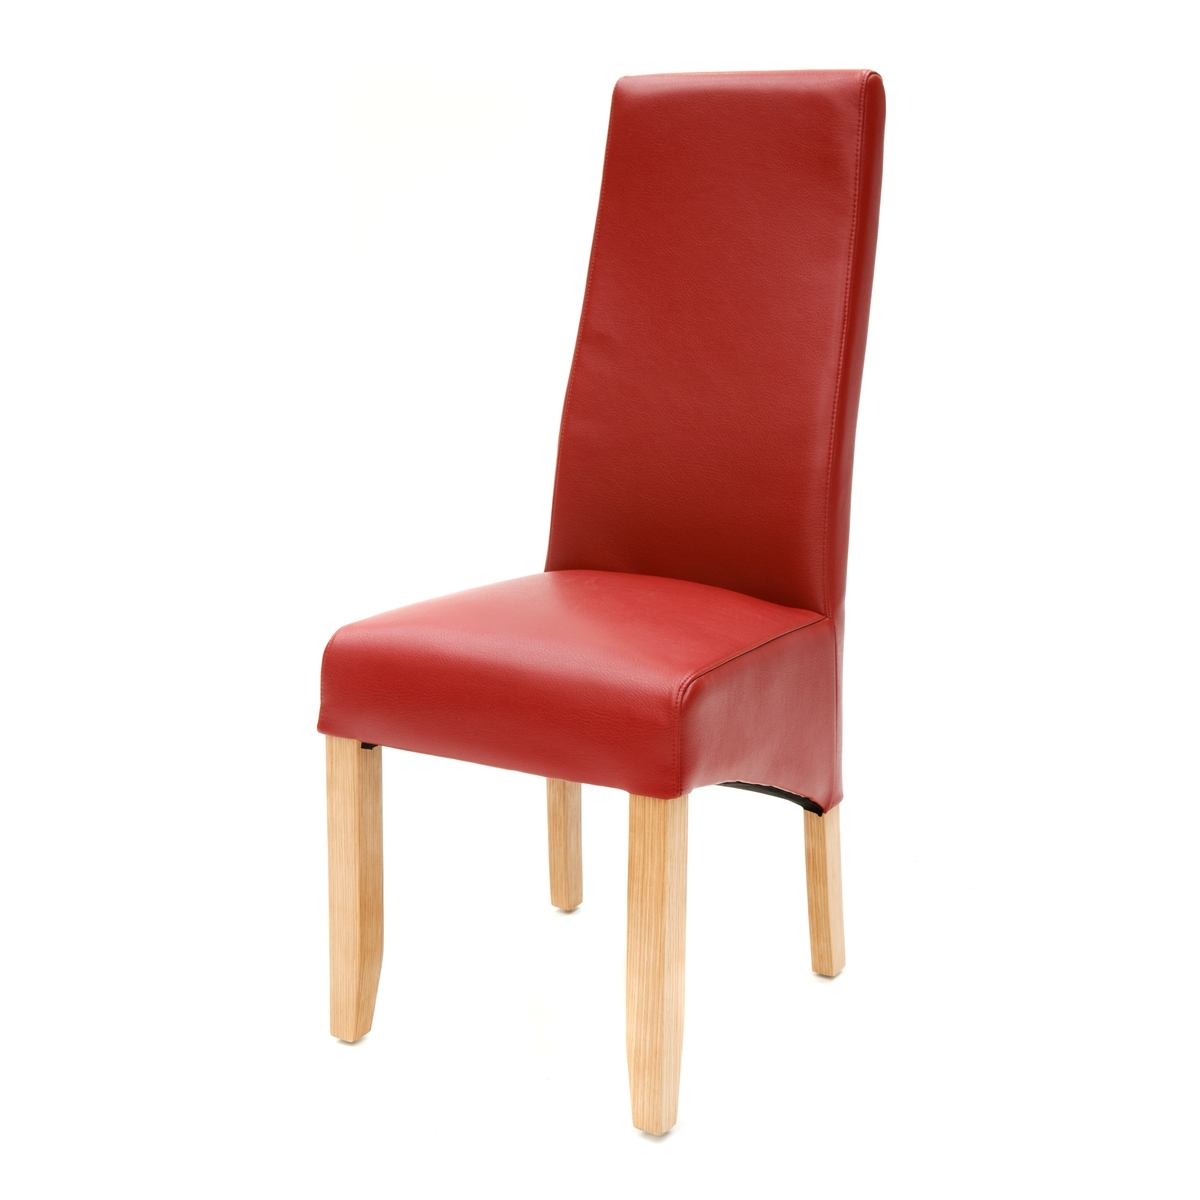 Wavey Dining Chair – Scs Endurance Mirage Red – Willis & Gambier Outlet With Regard To Most Popular Scs Dining Tables (View 23 of 25)